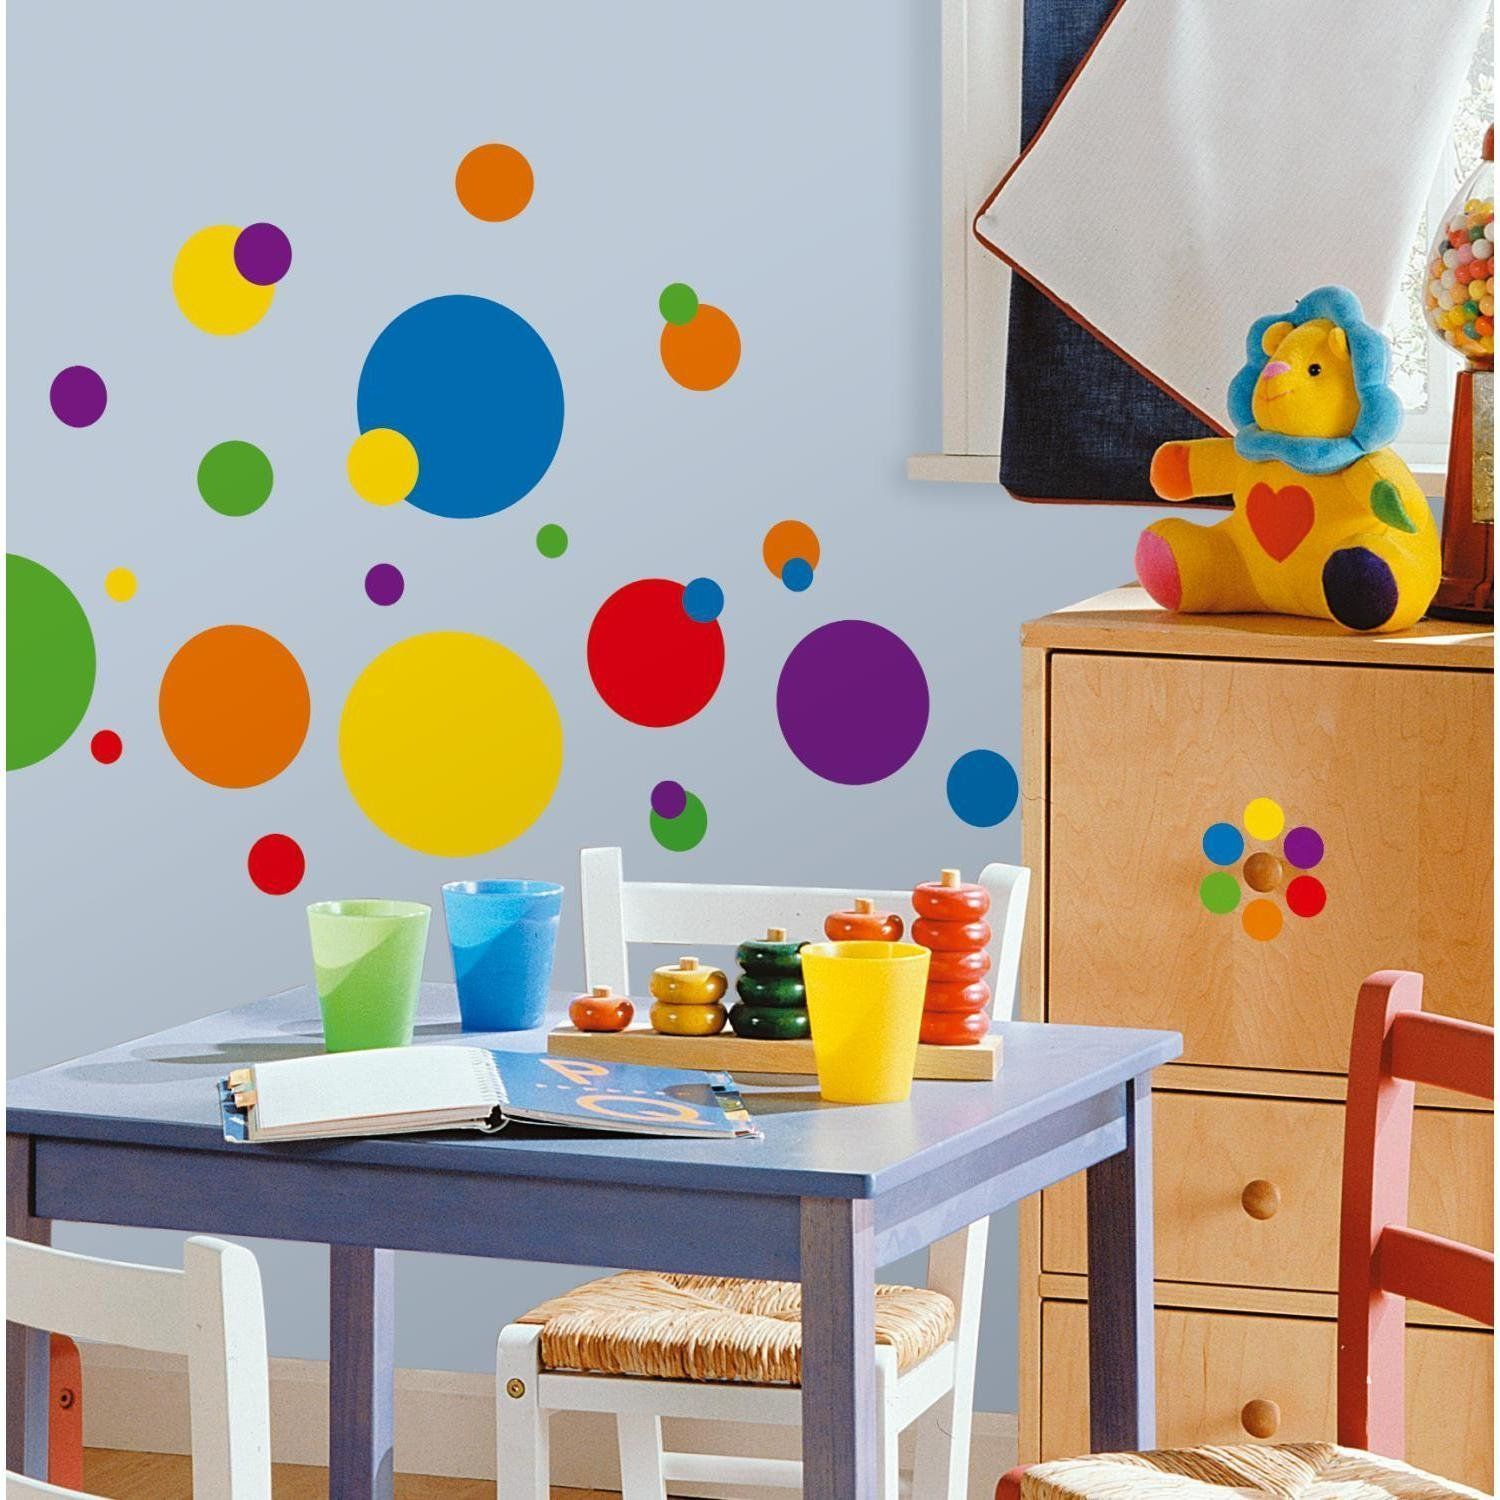 Vinyl  Includes 31 Wall Decals  Easy To Apply Just